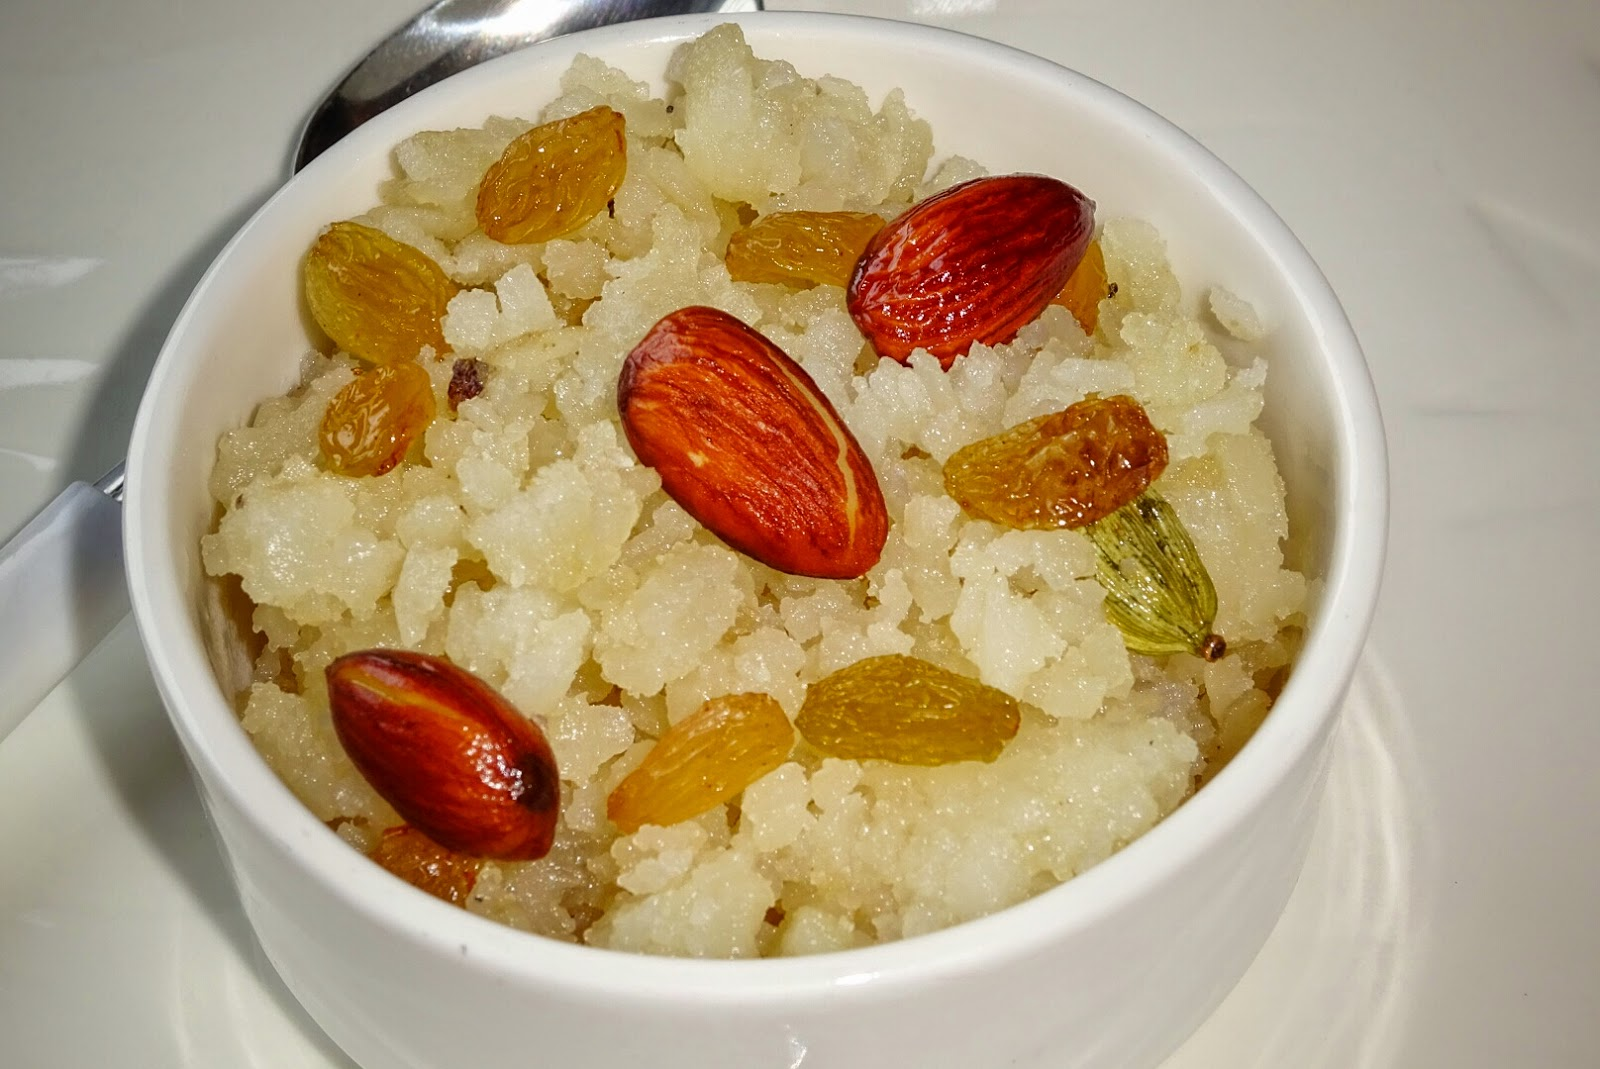 http://vegindiancooking121212.blogspot.in/2014/09/meetha-poha-sweet-rice-flakes-recipe.html